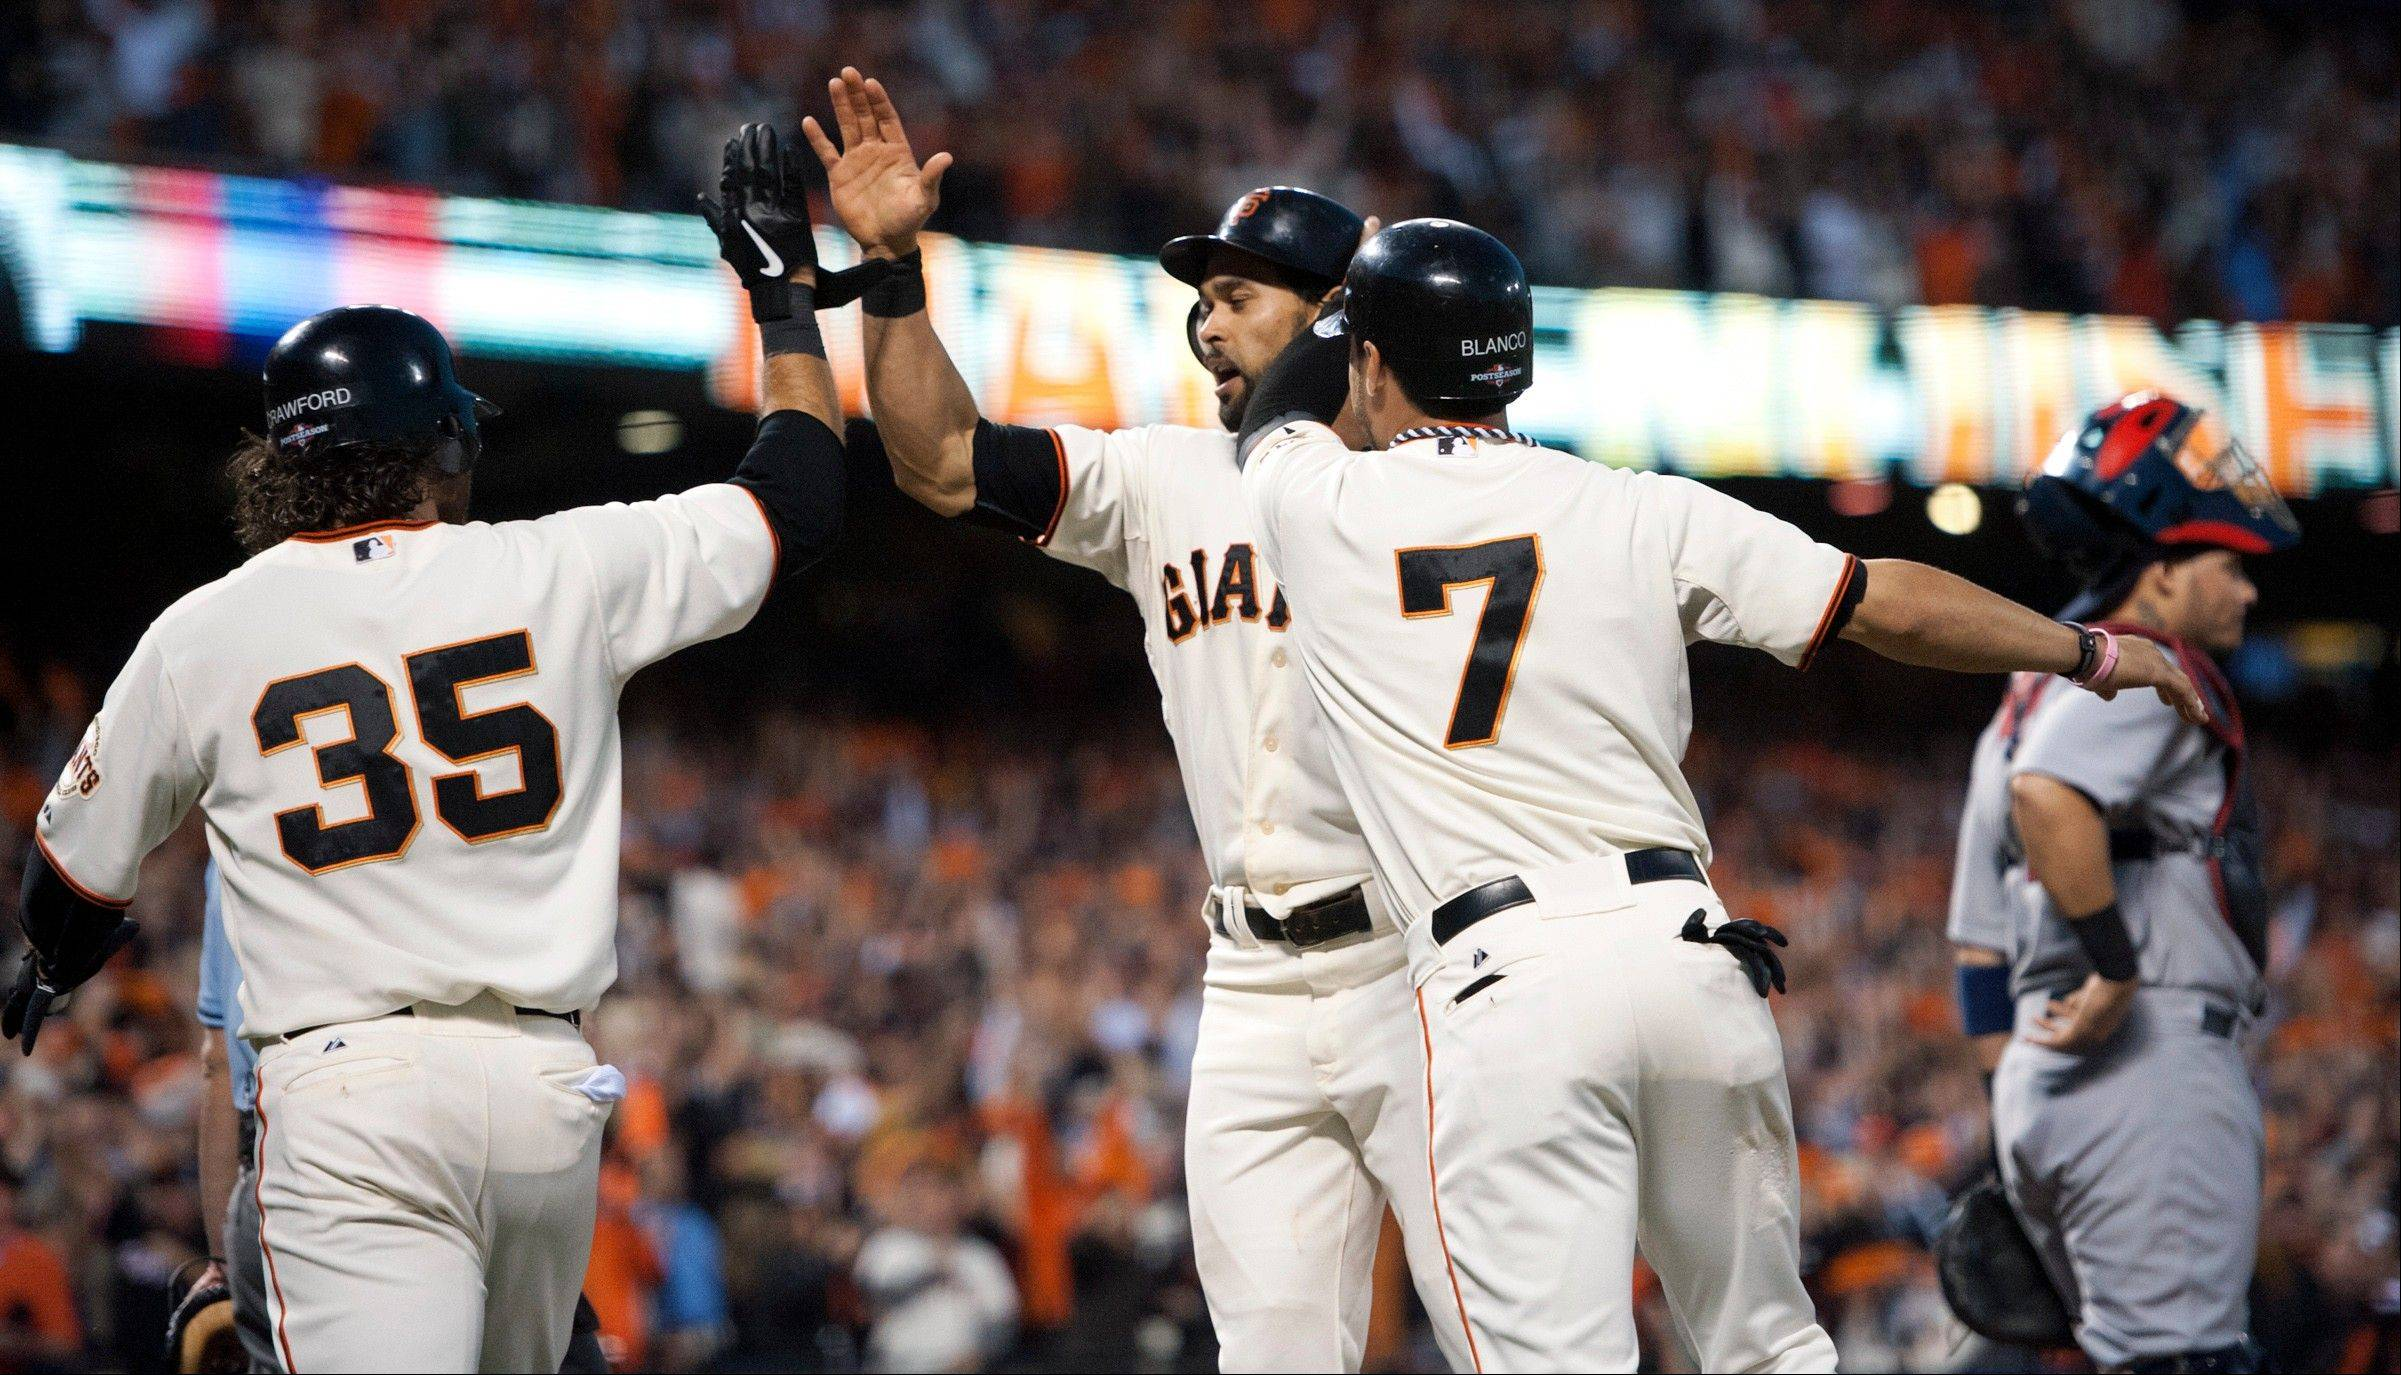 The San Francisco Giants' Brandon Crawford (35), Gregor Blanco (7) and Angel Pagan celebrate at the plate Monday after scoring on a fielding error by St. Louis Cardinals left fielder Matt Holliday on a single by Giants' Marco Scutaro during the fourth inning of Game 2 of the National League championship series in San Francisco.